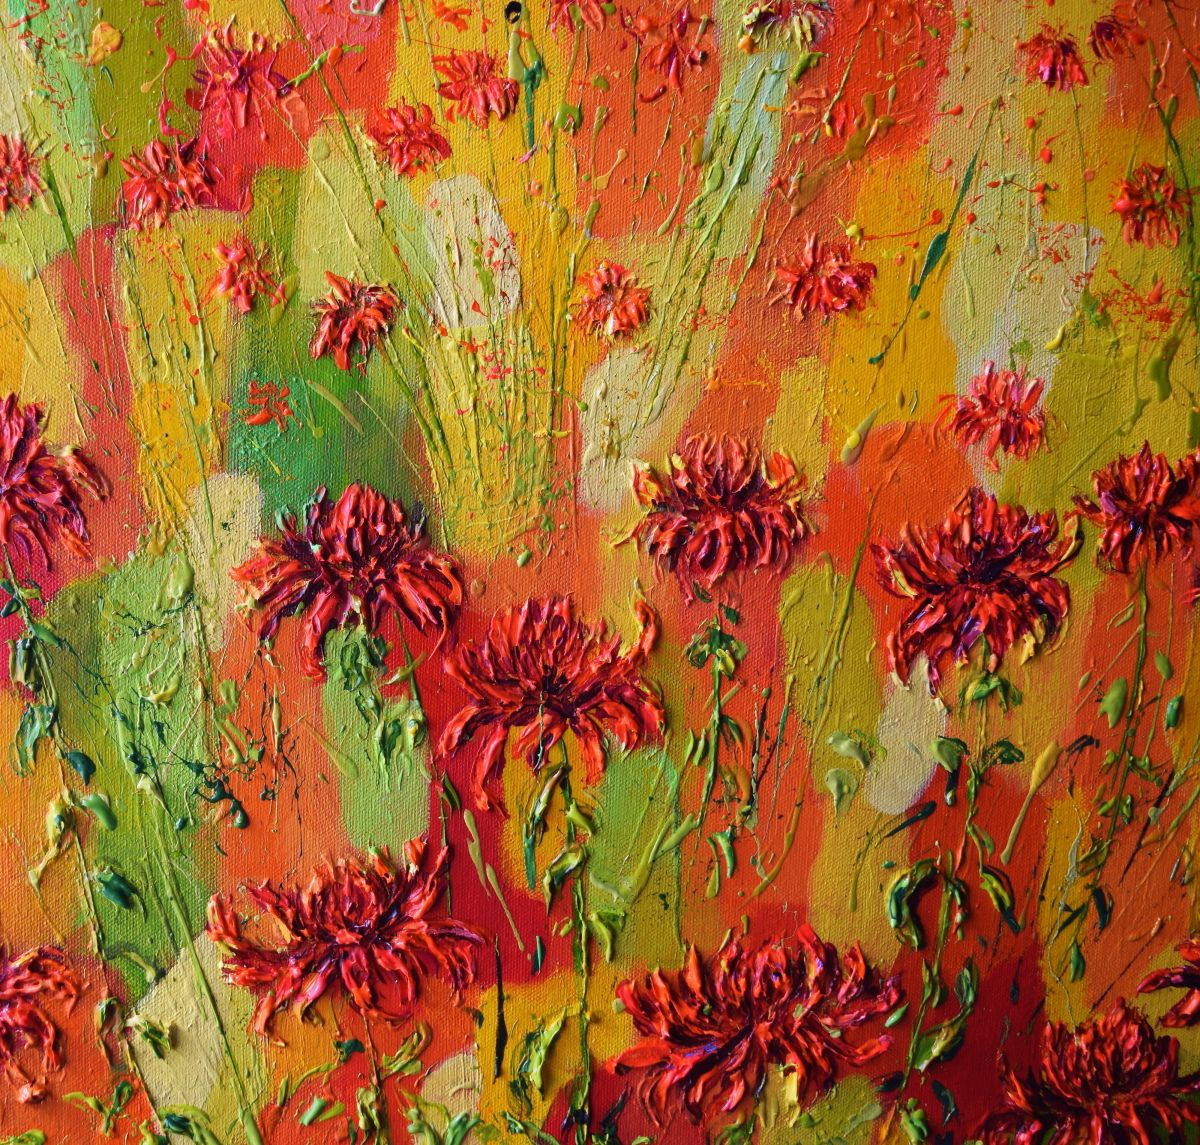 Hothouse Flowers 2017 Acrylic painting by Colette Baumback